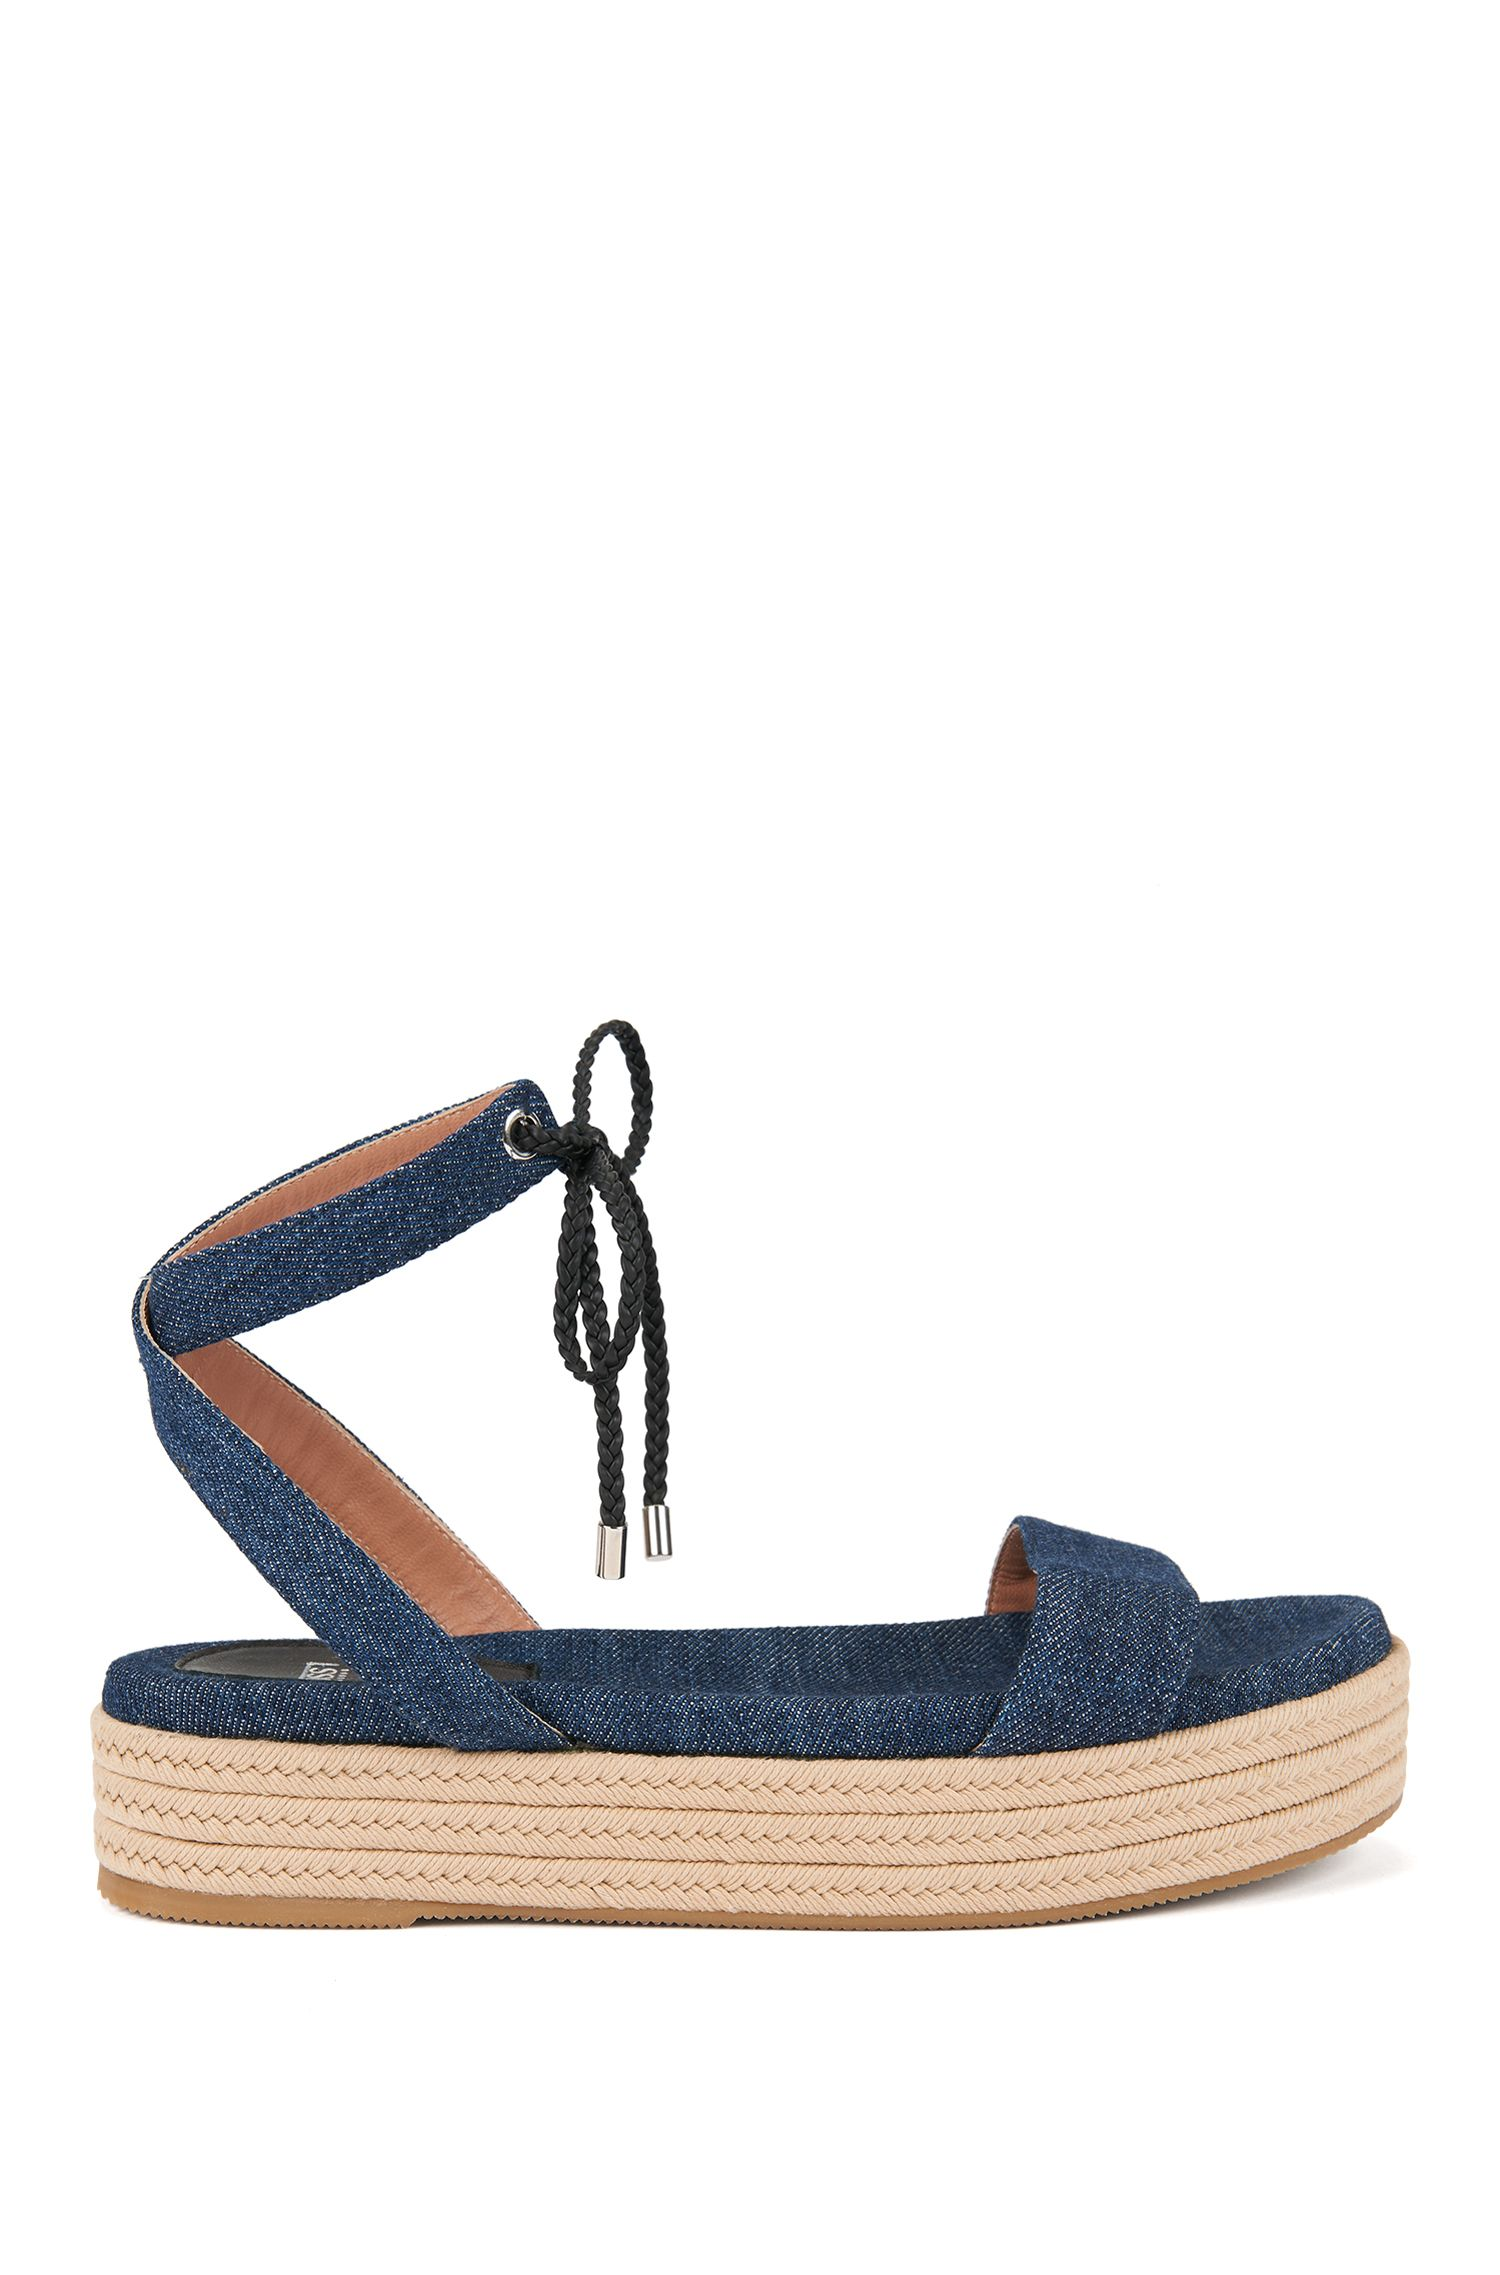 Sandali con zeppa in morbido denim